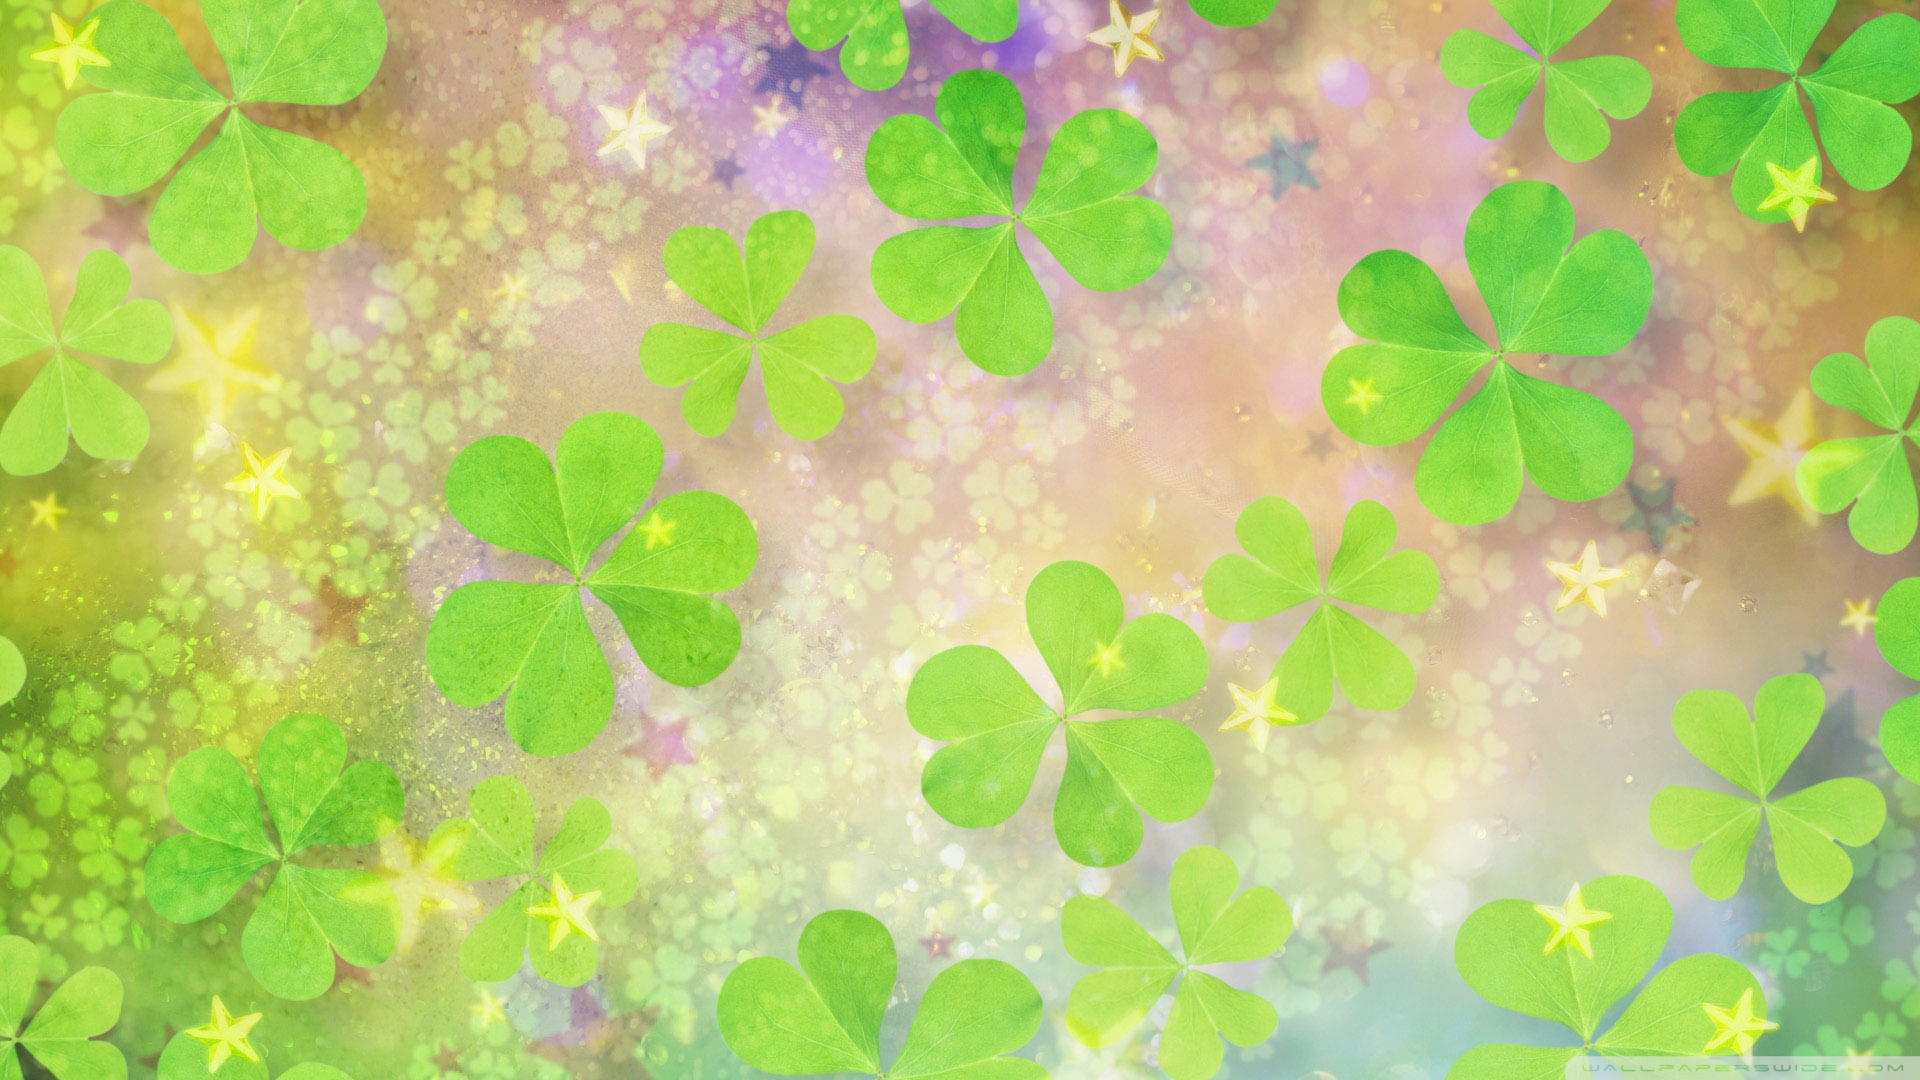 Clover Wallpaper 1920x1080 44794